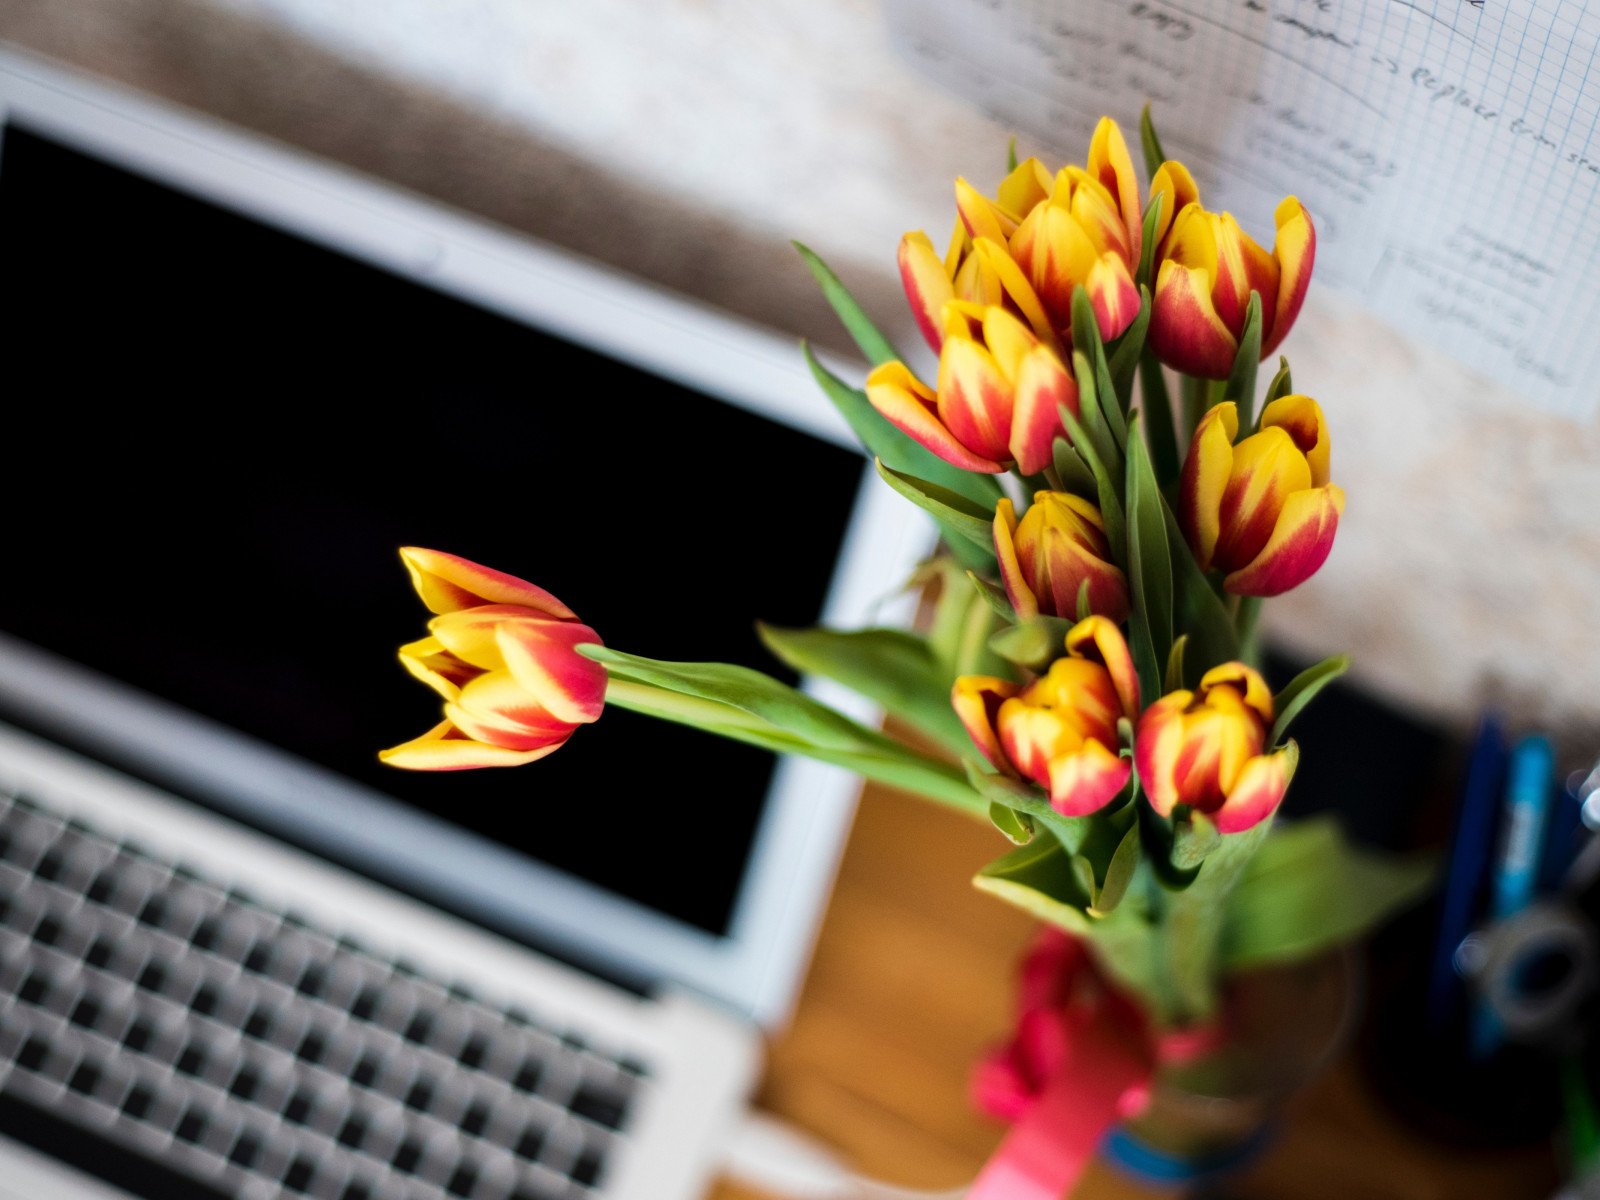 Laptop and tulips bouquet wallpaper 1600x1200